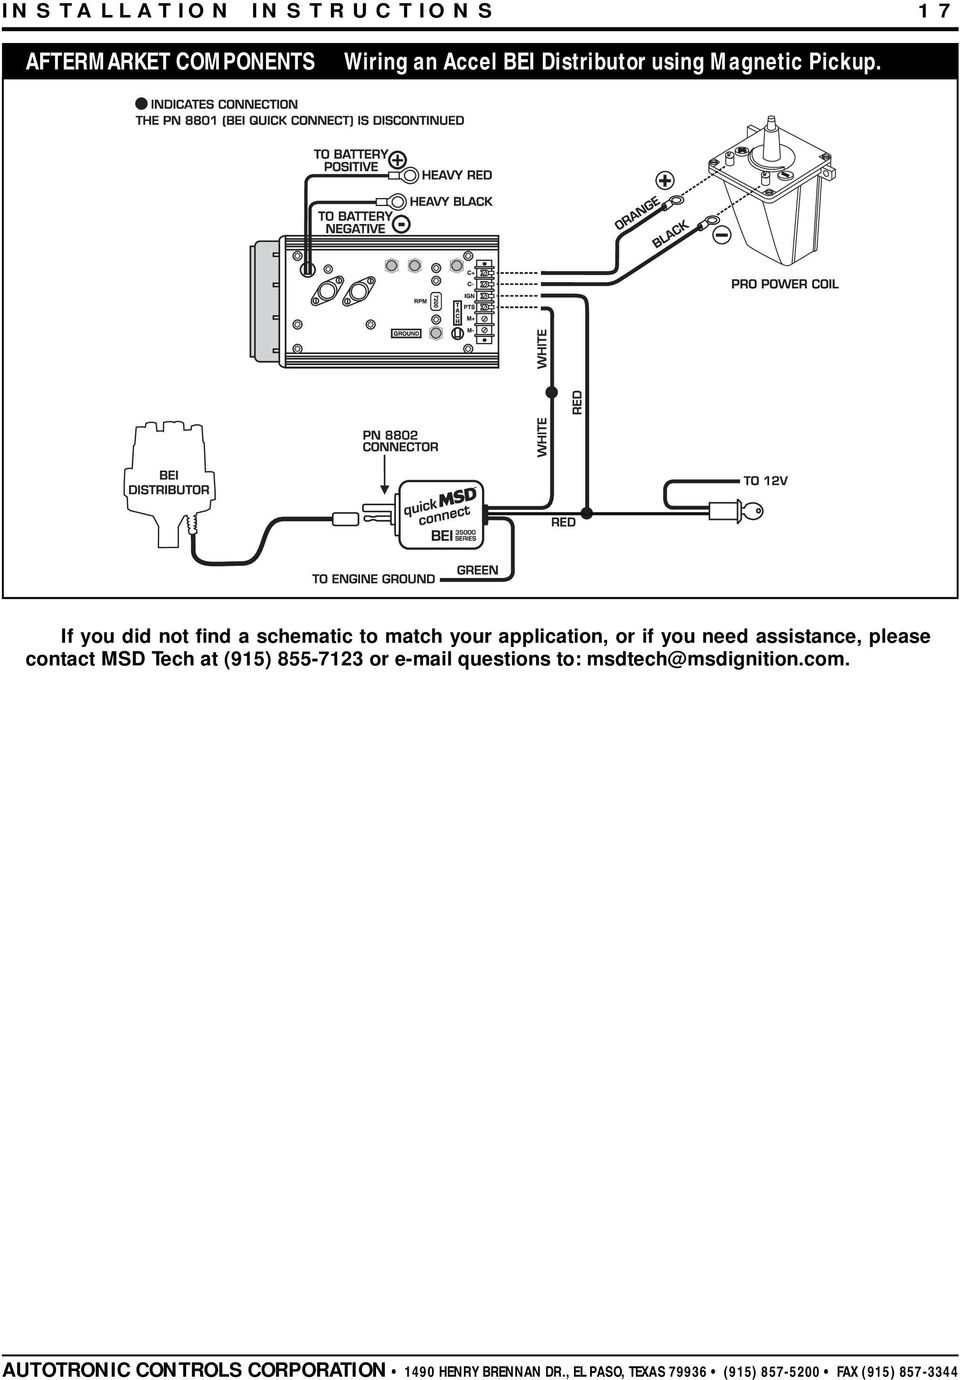 msd 7al 2 ignition pn 7220 7224 7226 pdf if you did not a schematic to match your application or if you